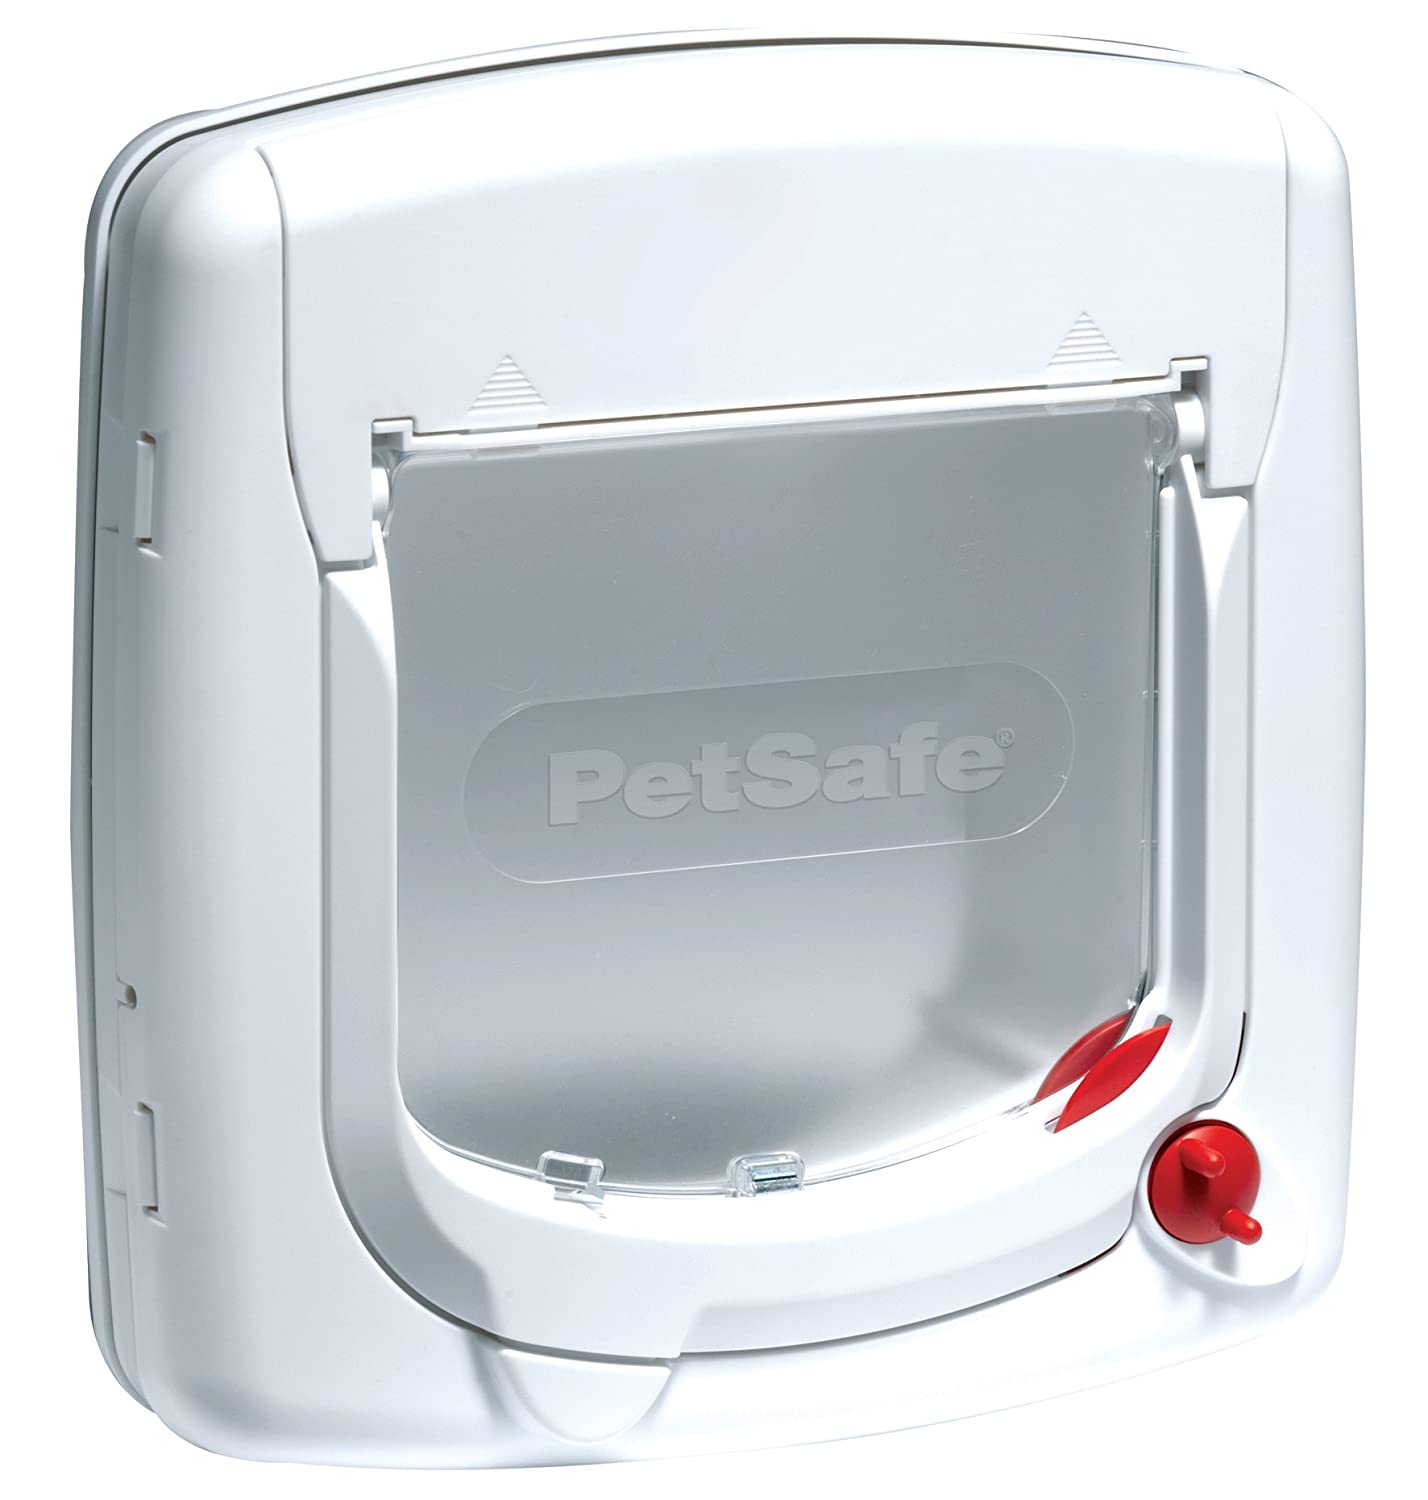 PetSafe Staywell, Deluxe Manual Cat Flap, White, 4 Way Locking, Easy Install 300EF